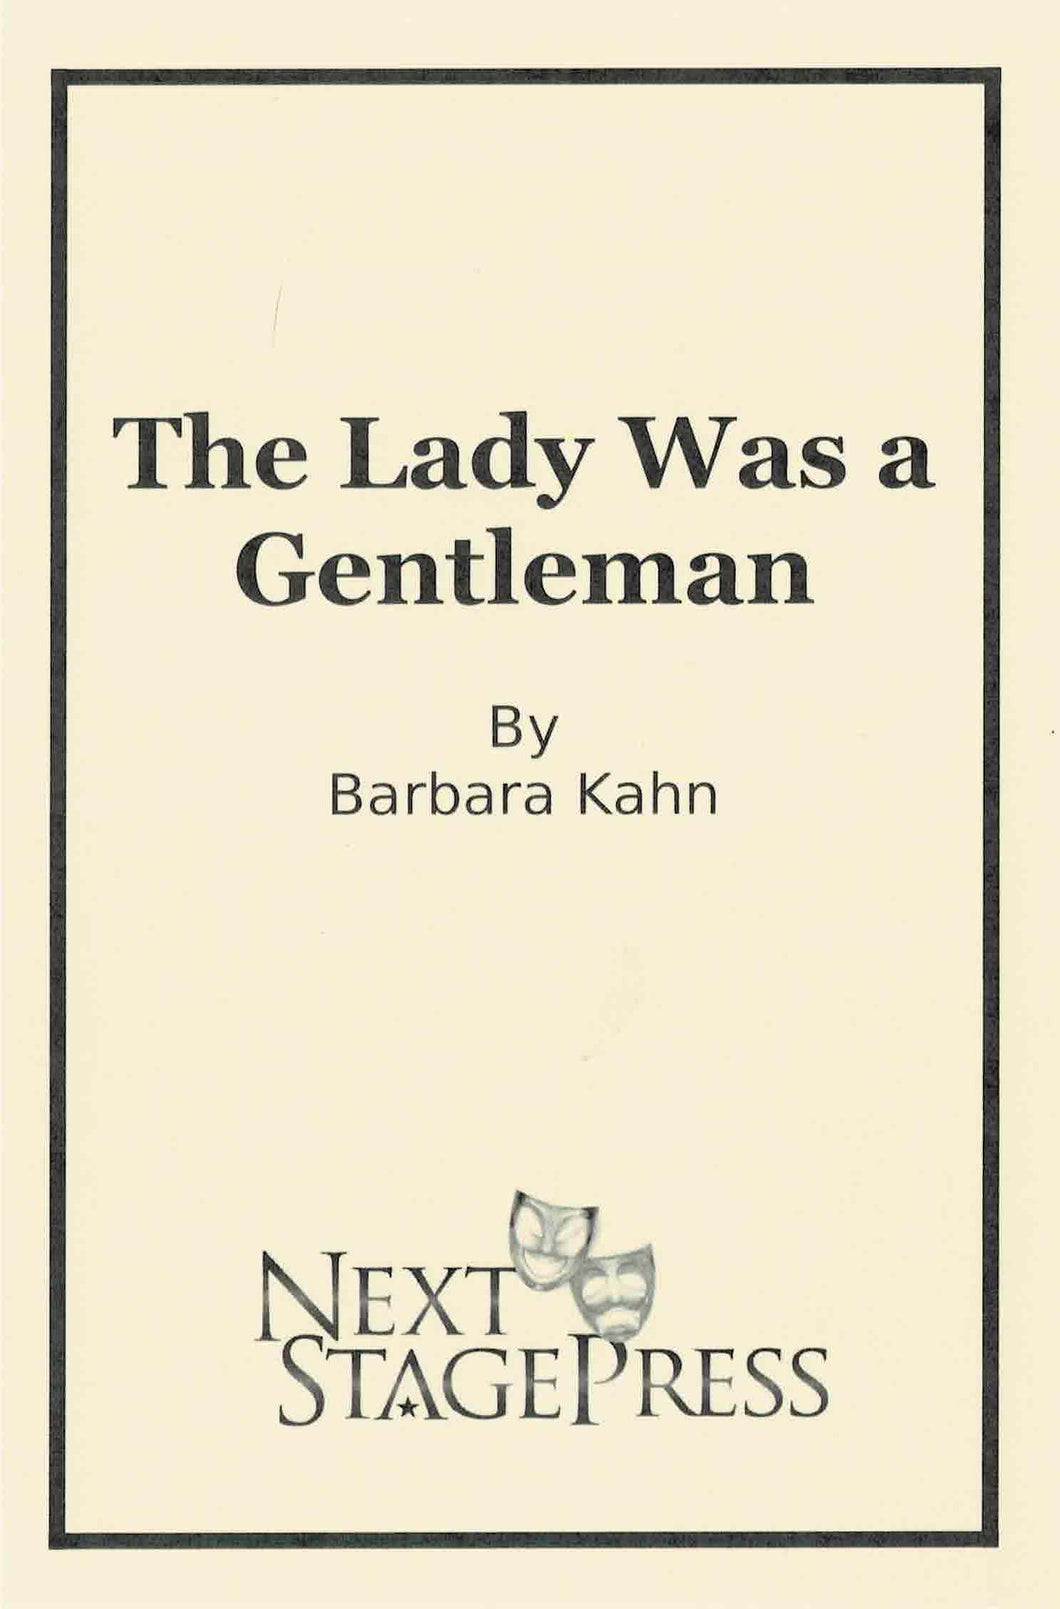 The Lady Was a Gentleman